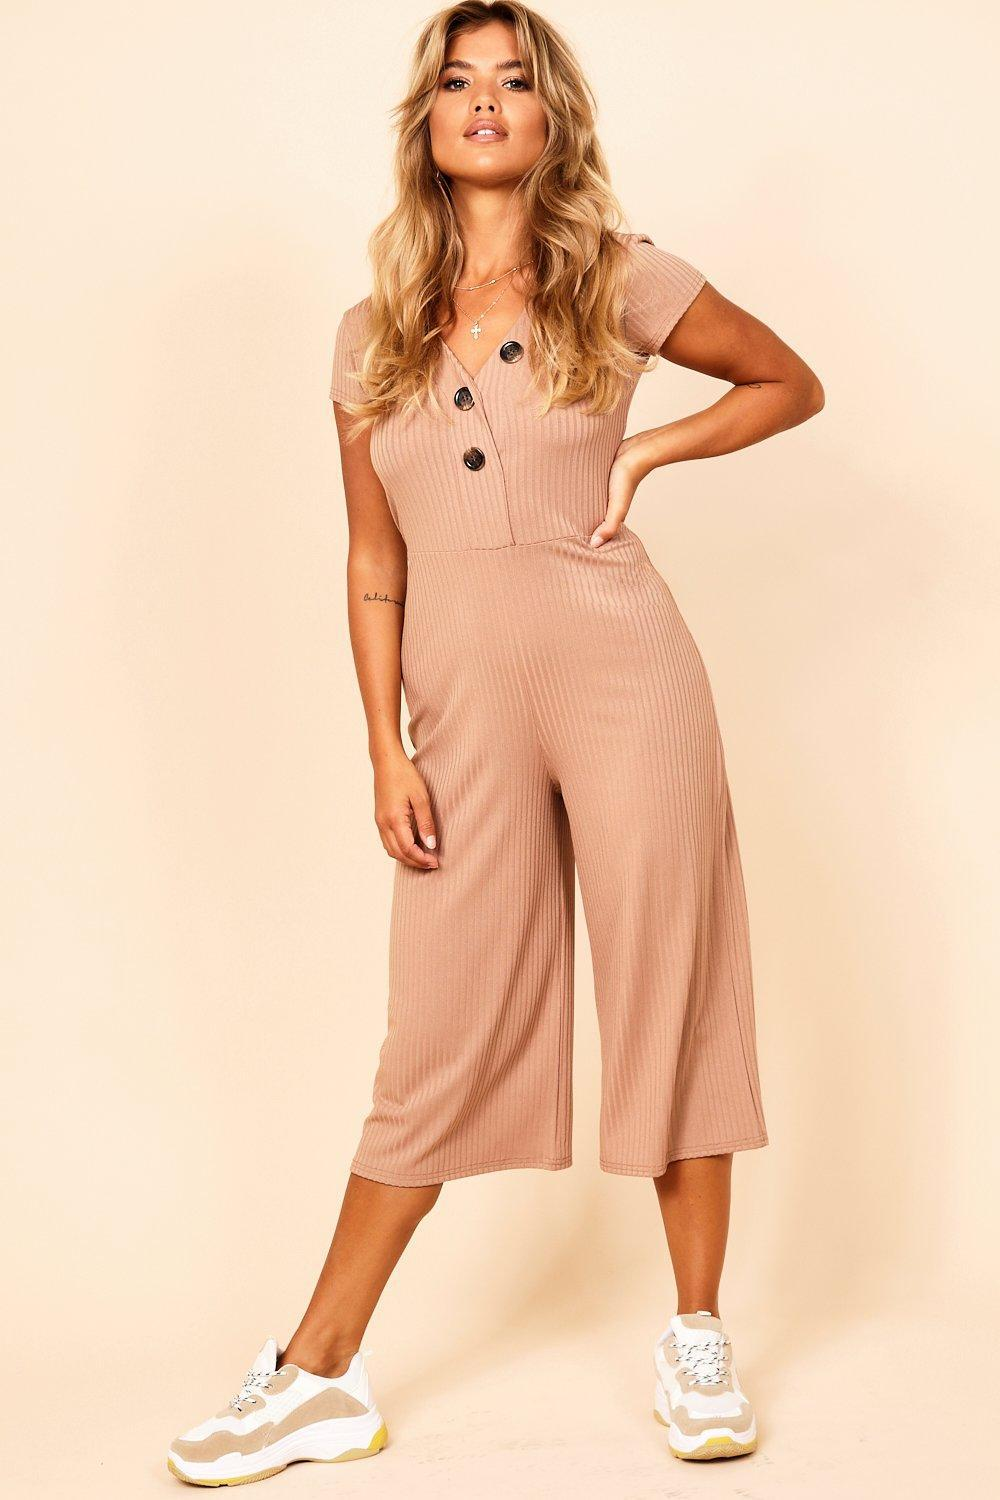 ff94467d92a Lyst - Boohoo Jumbo Rib Mock Horn Button Culotte Jumpsuit in Natural